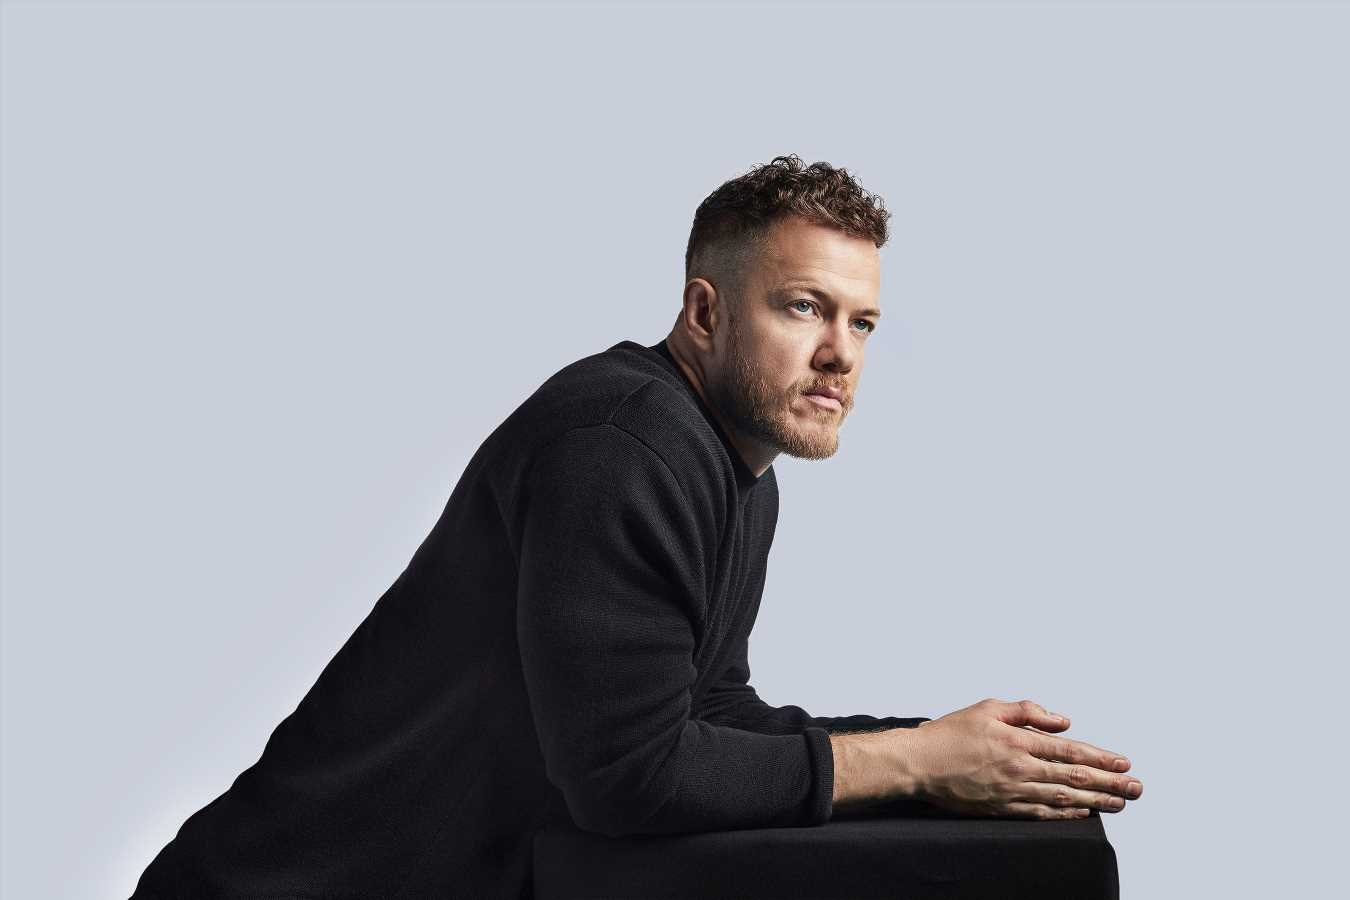 Ankylosing Spondylitis Affects Millions Including Imagine Dragons' Dan Reynolds — What Is It?